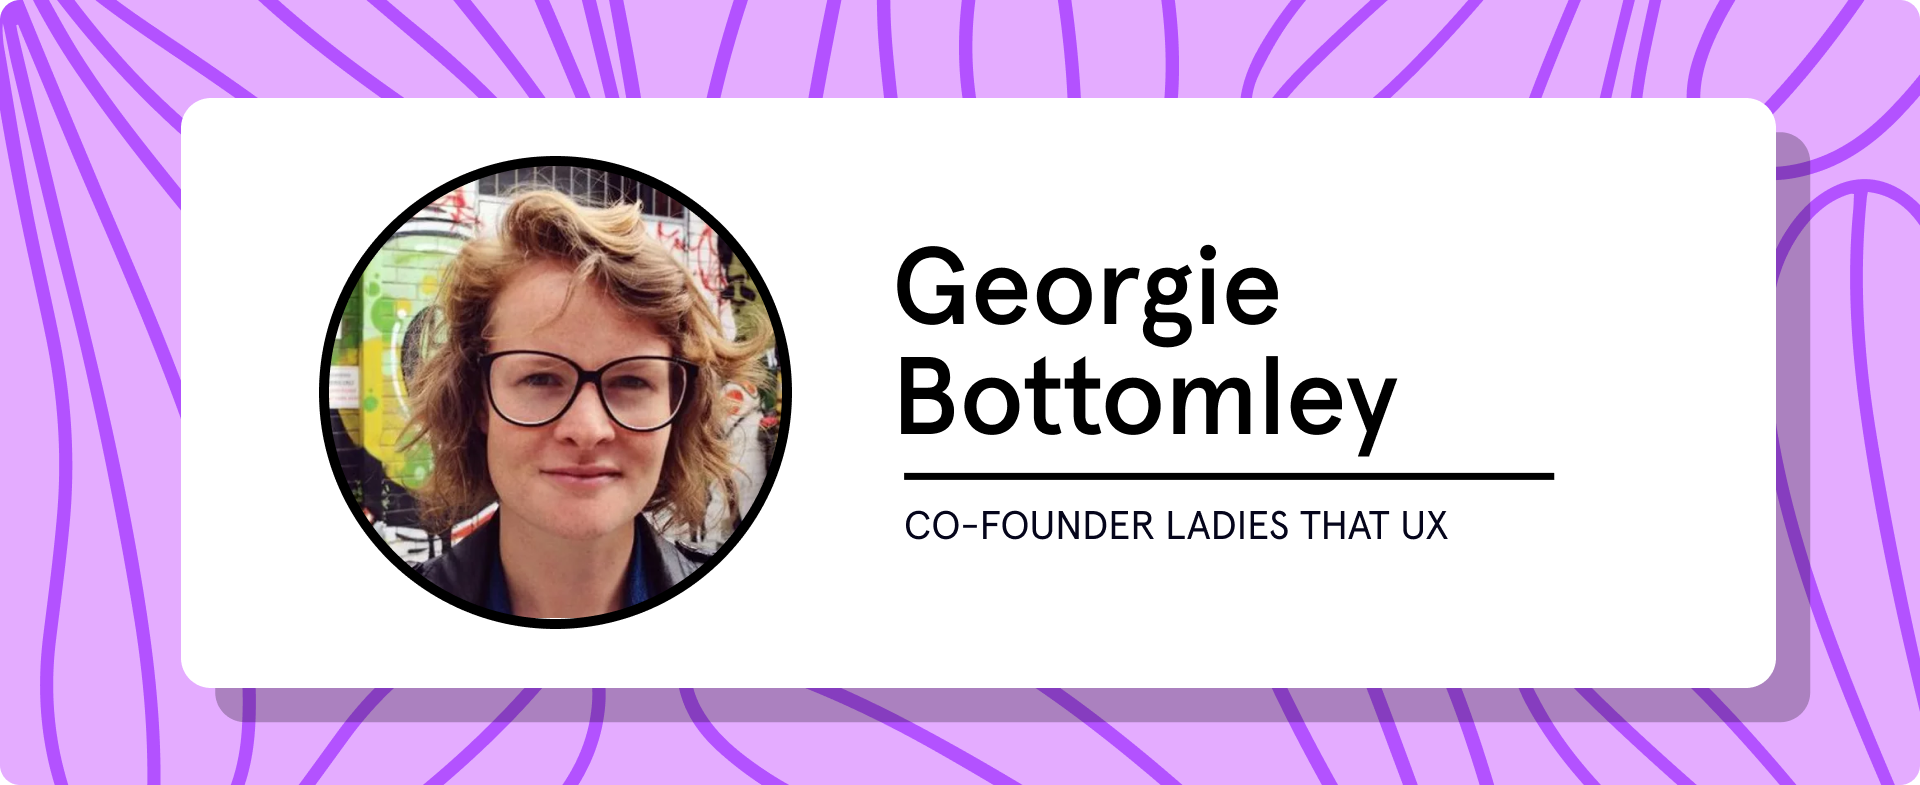 Georgie Bottomley, co-founder Ladies That UX